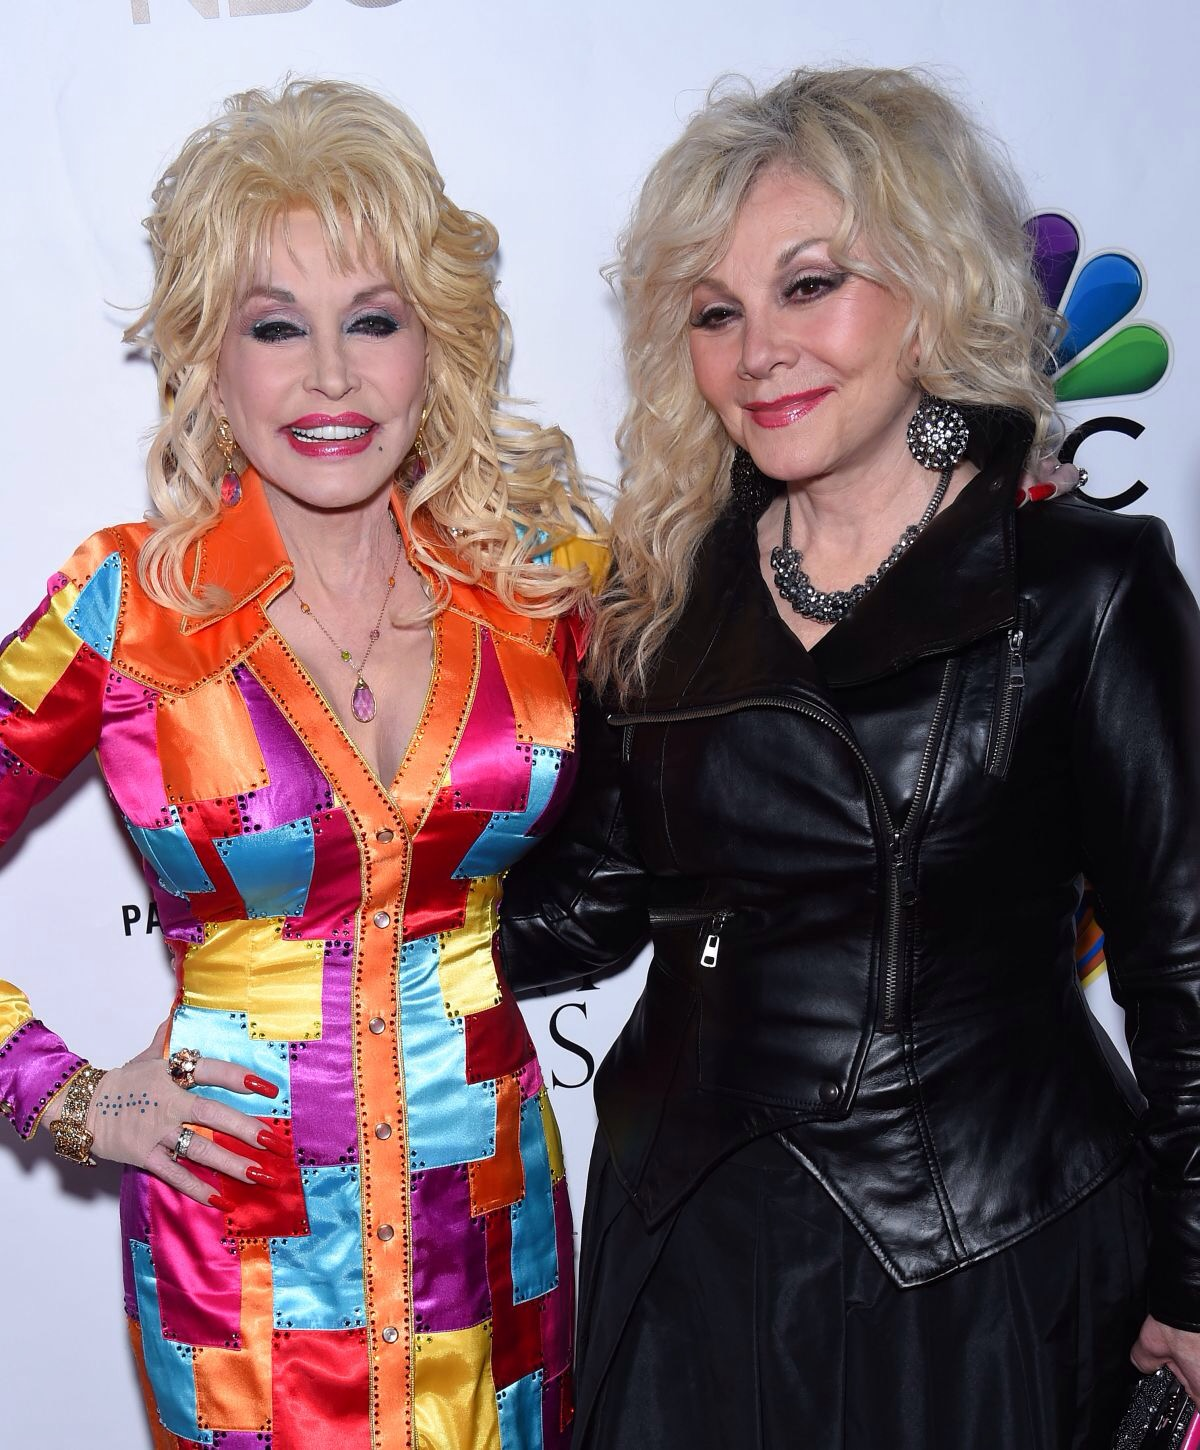 Stella Talks About Her Sister Dolly Parton Dollyfancom